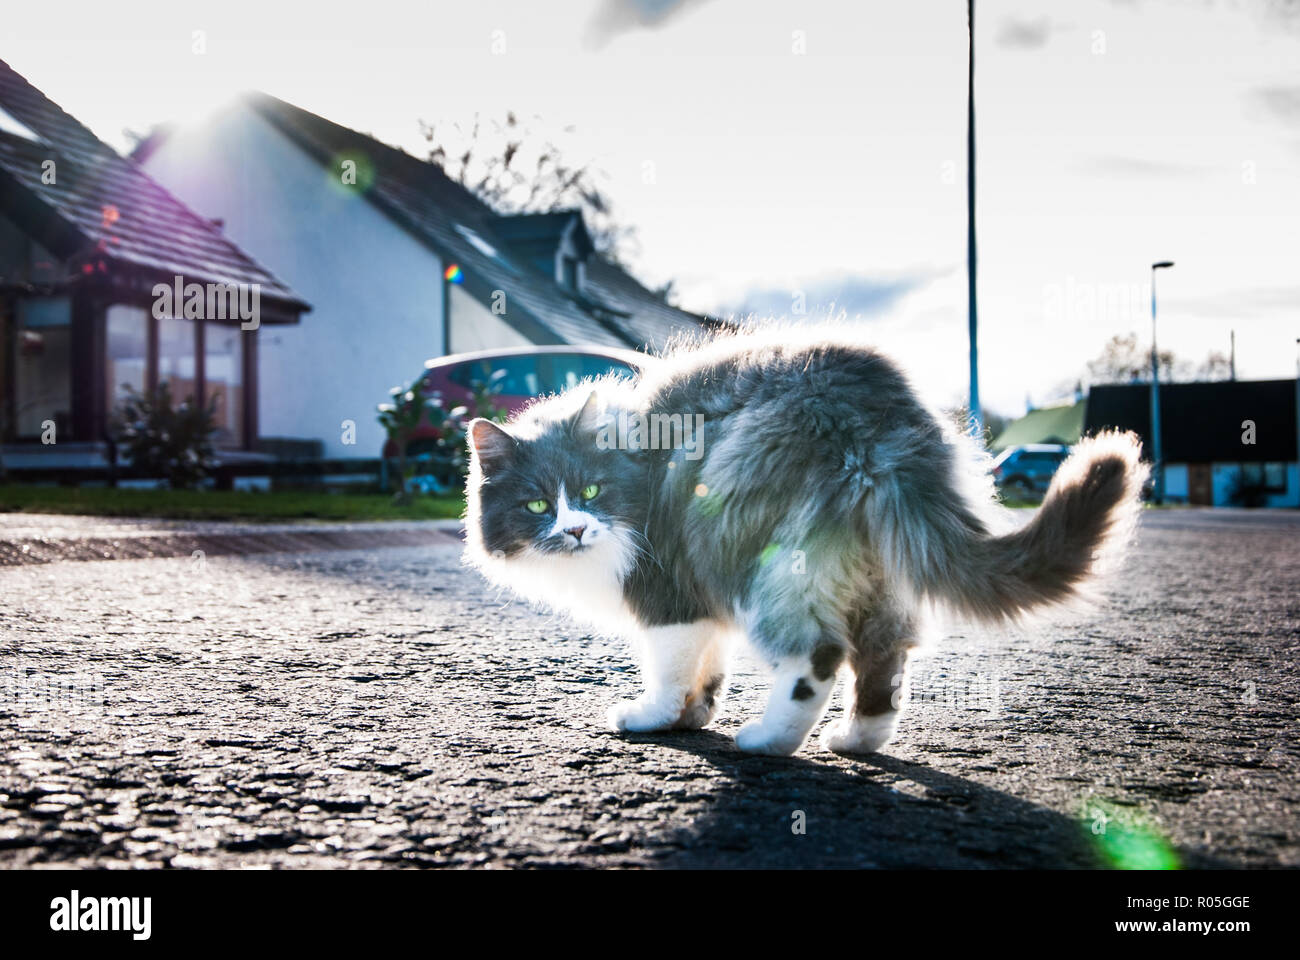 A fluffy grey white cat - Stock Image